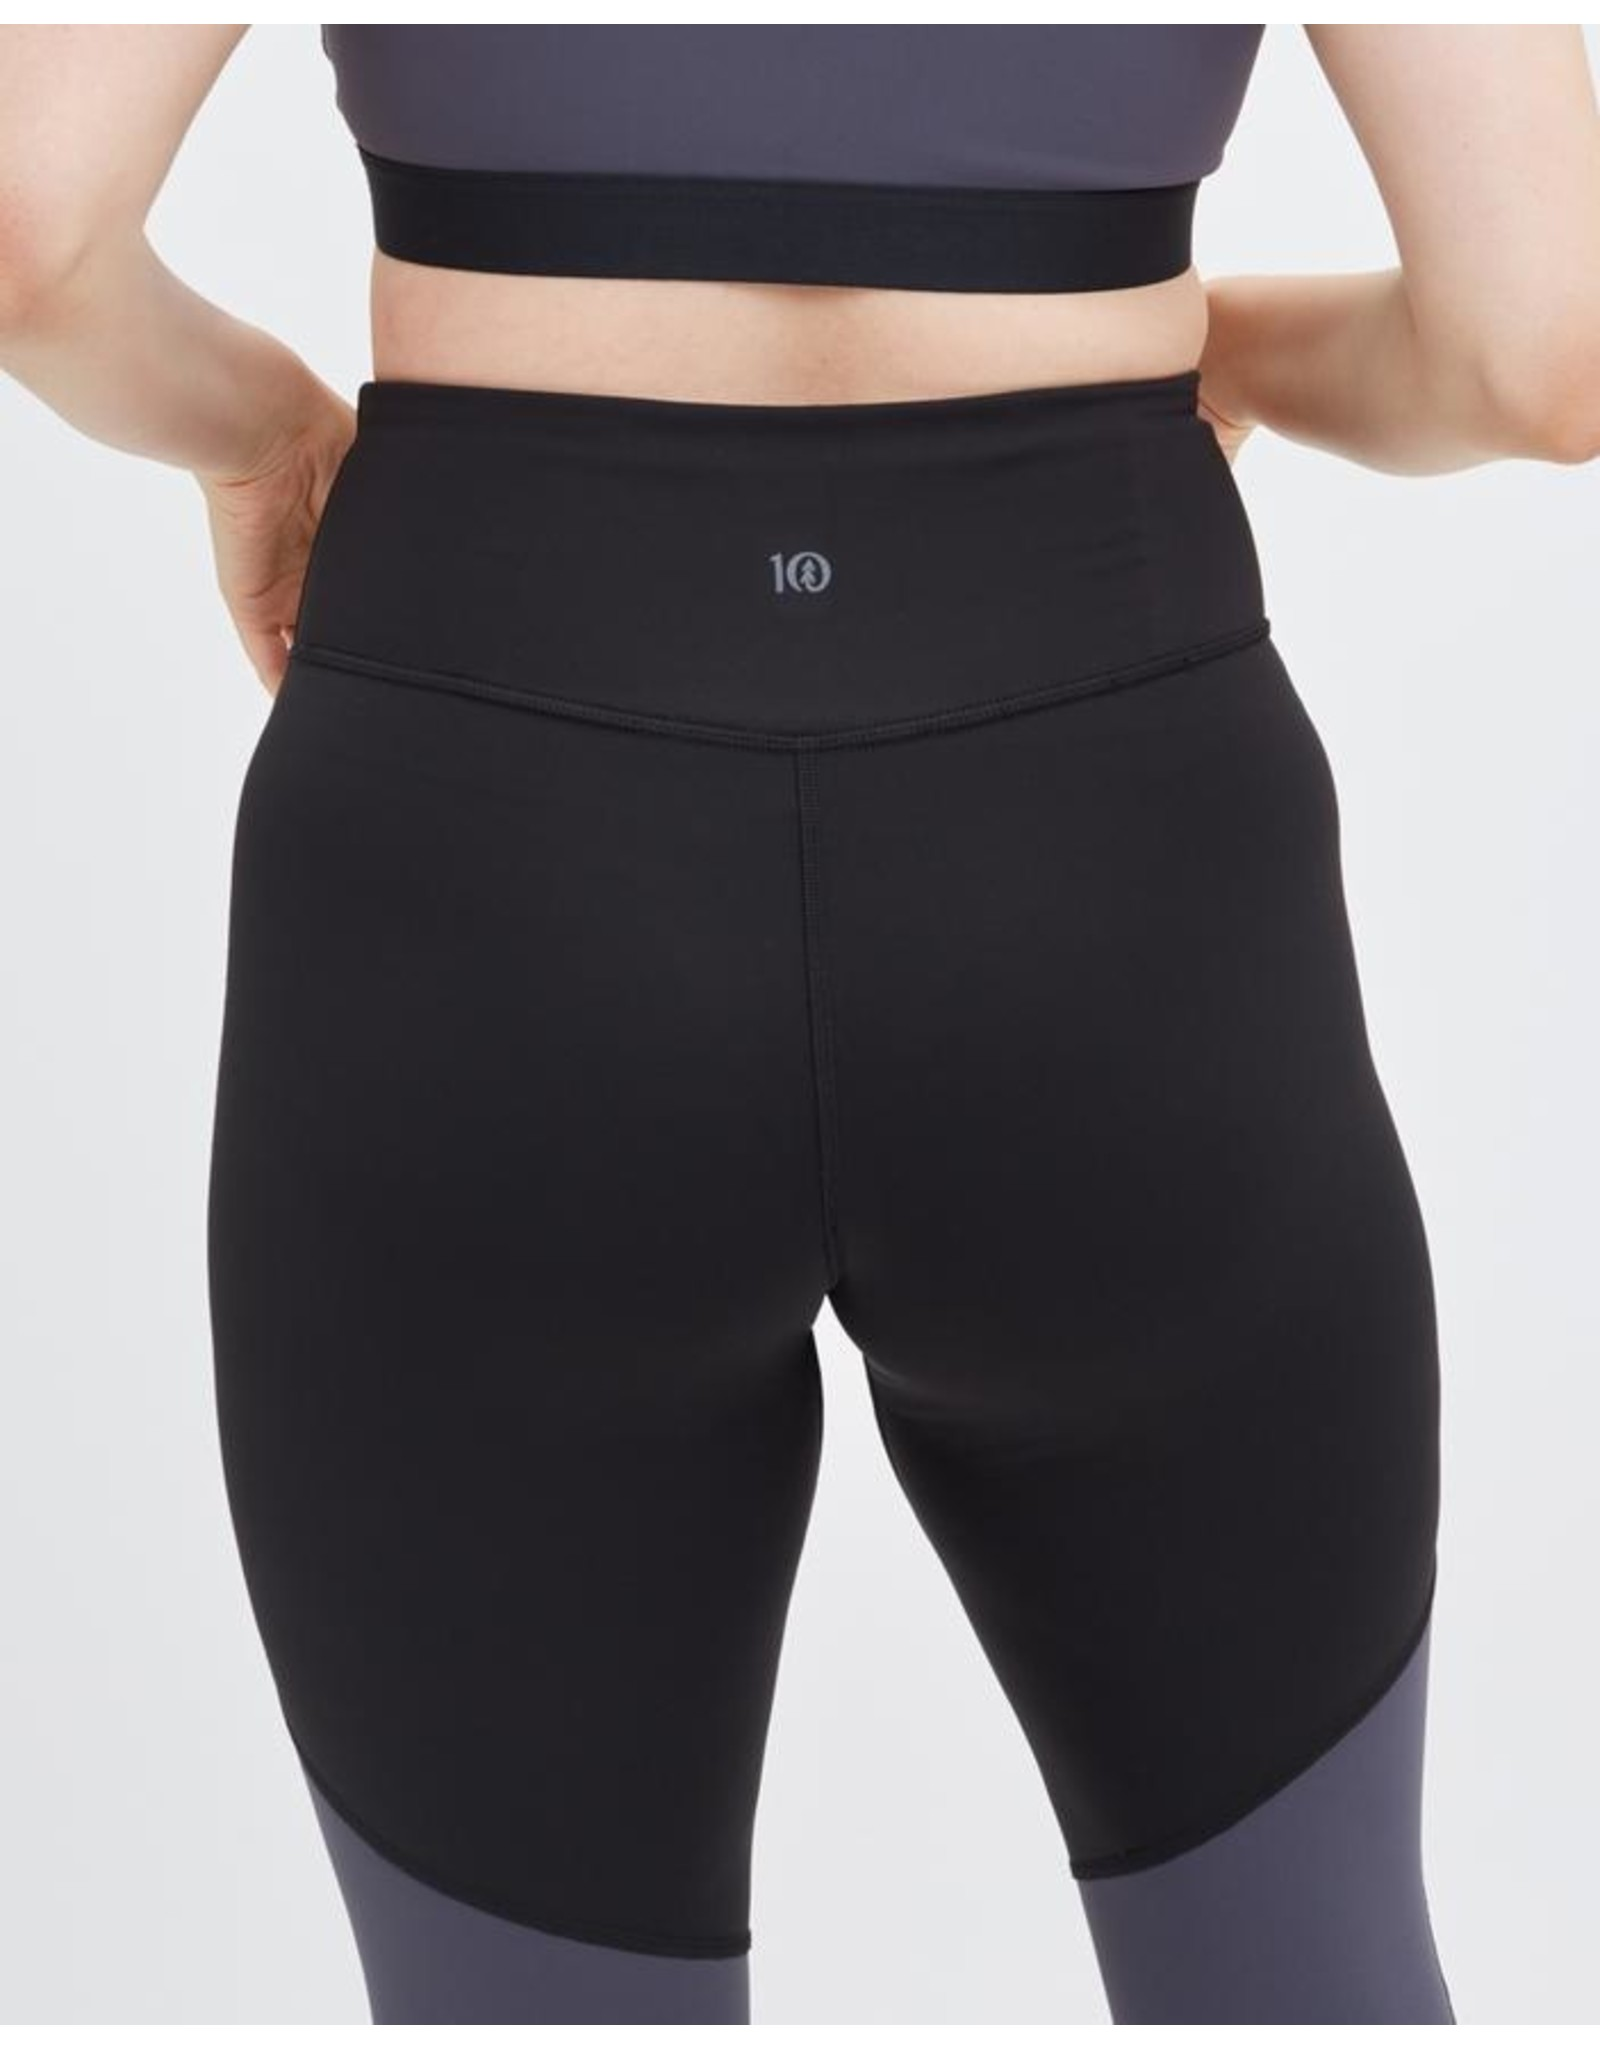 Tentree In Motion 7/8 Seamed Legging